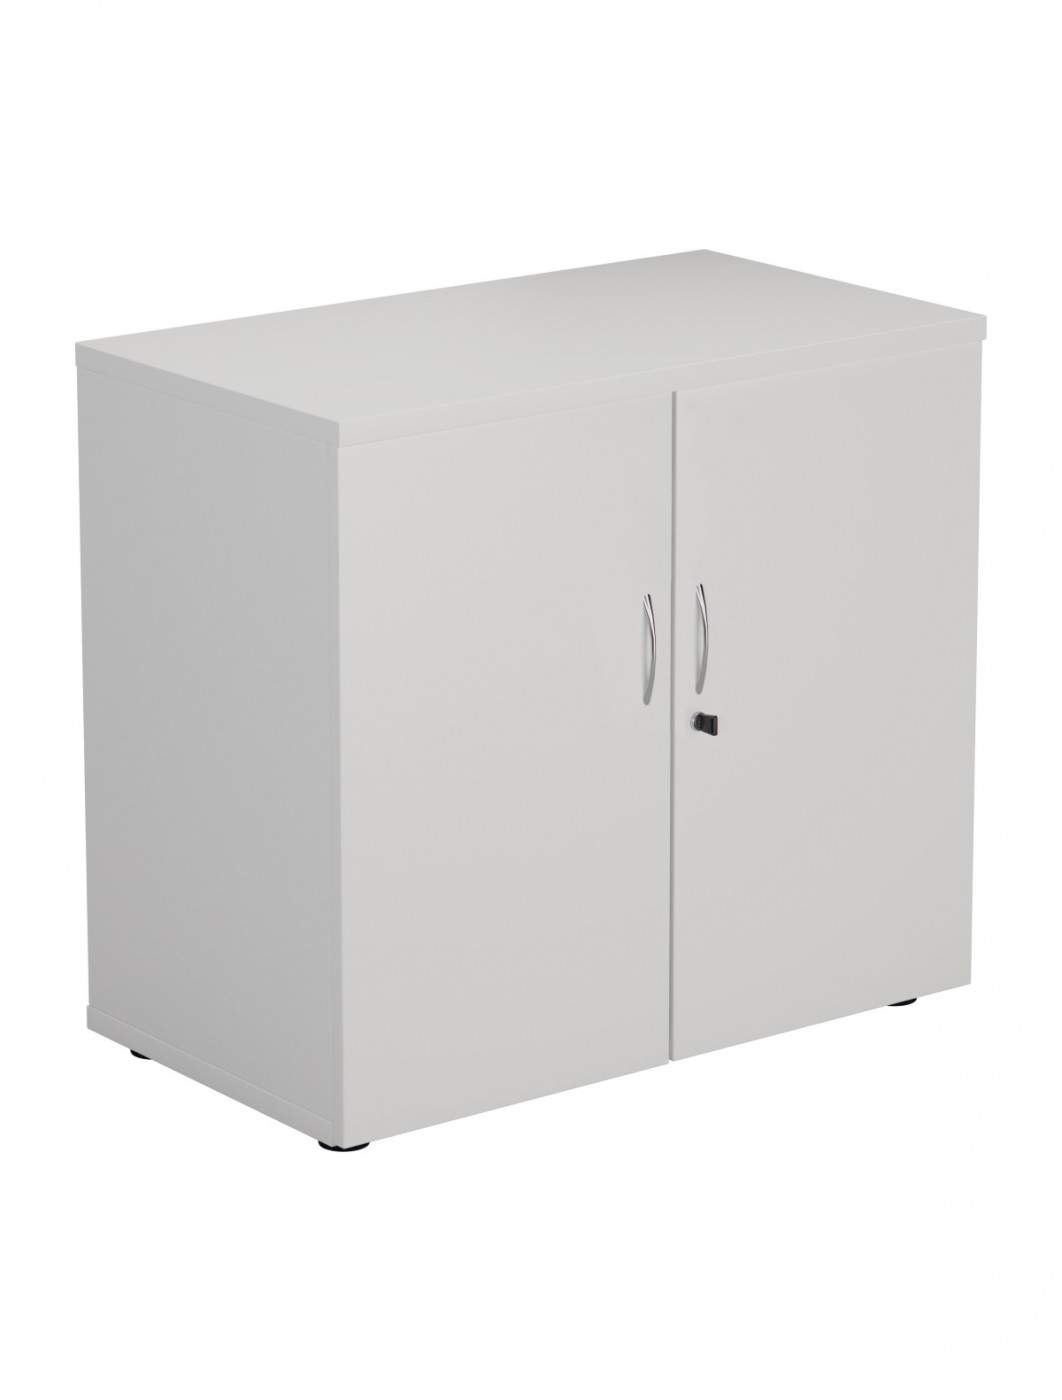 Desk High Cupboard in White LITE745WDWH